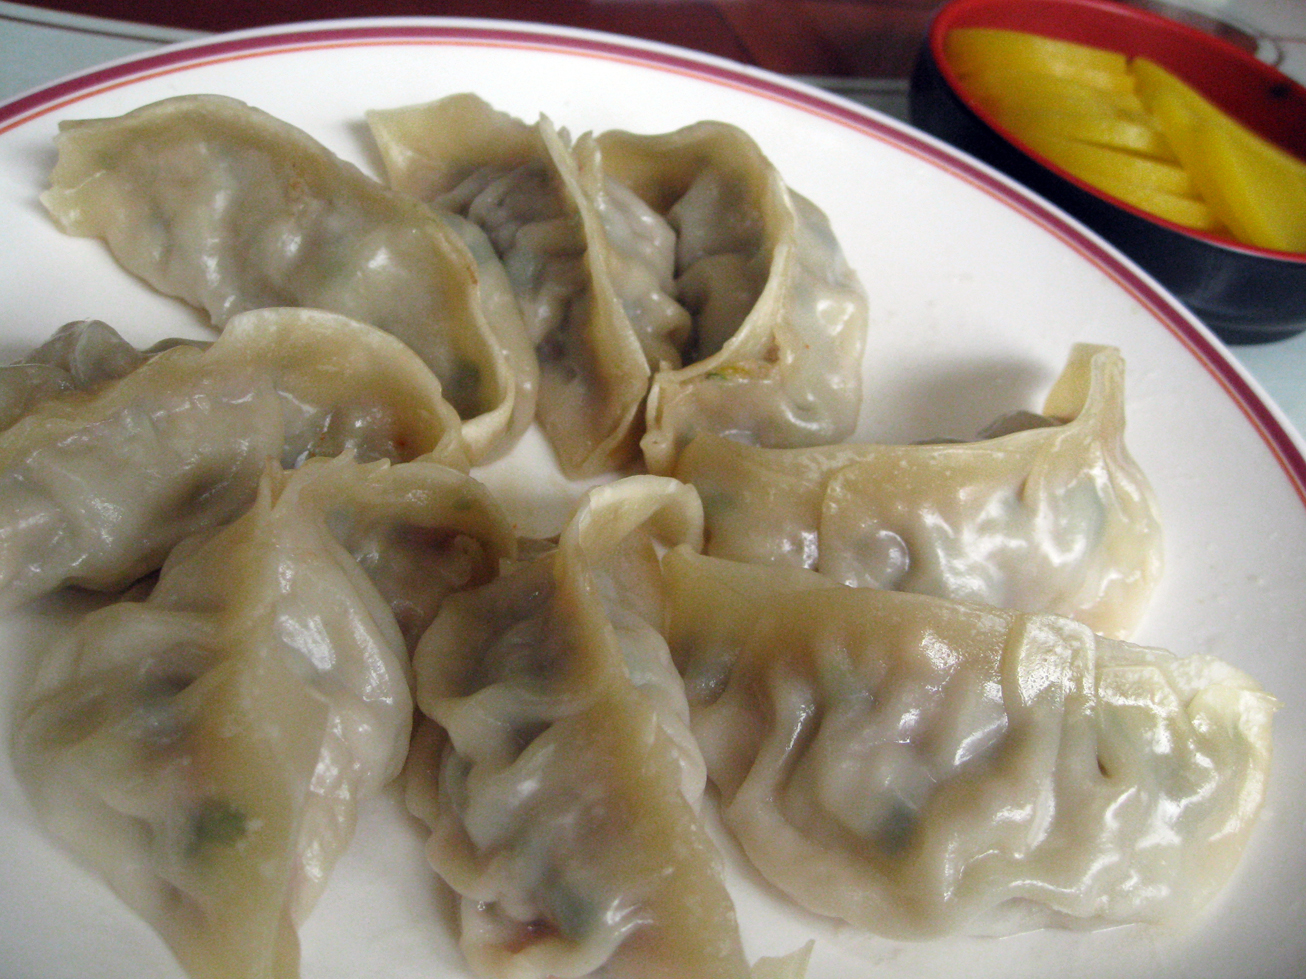 Dumplings are classified as